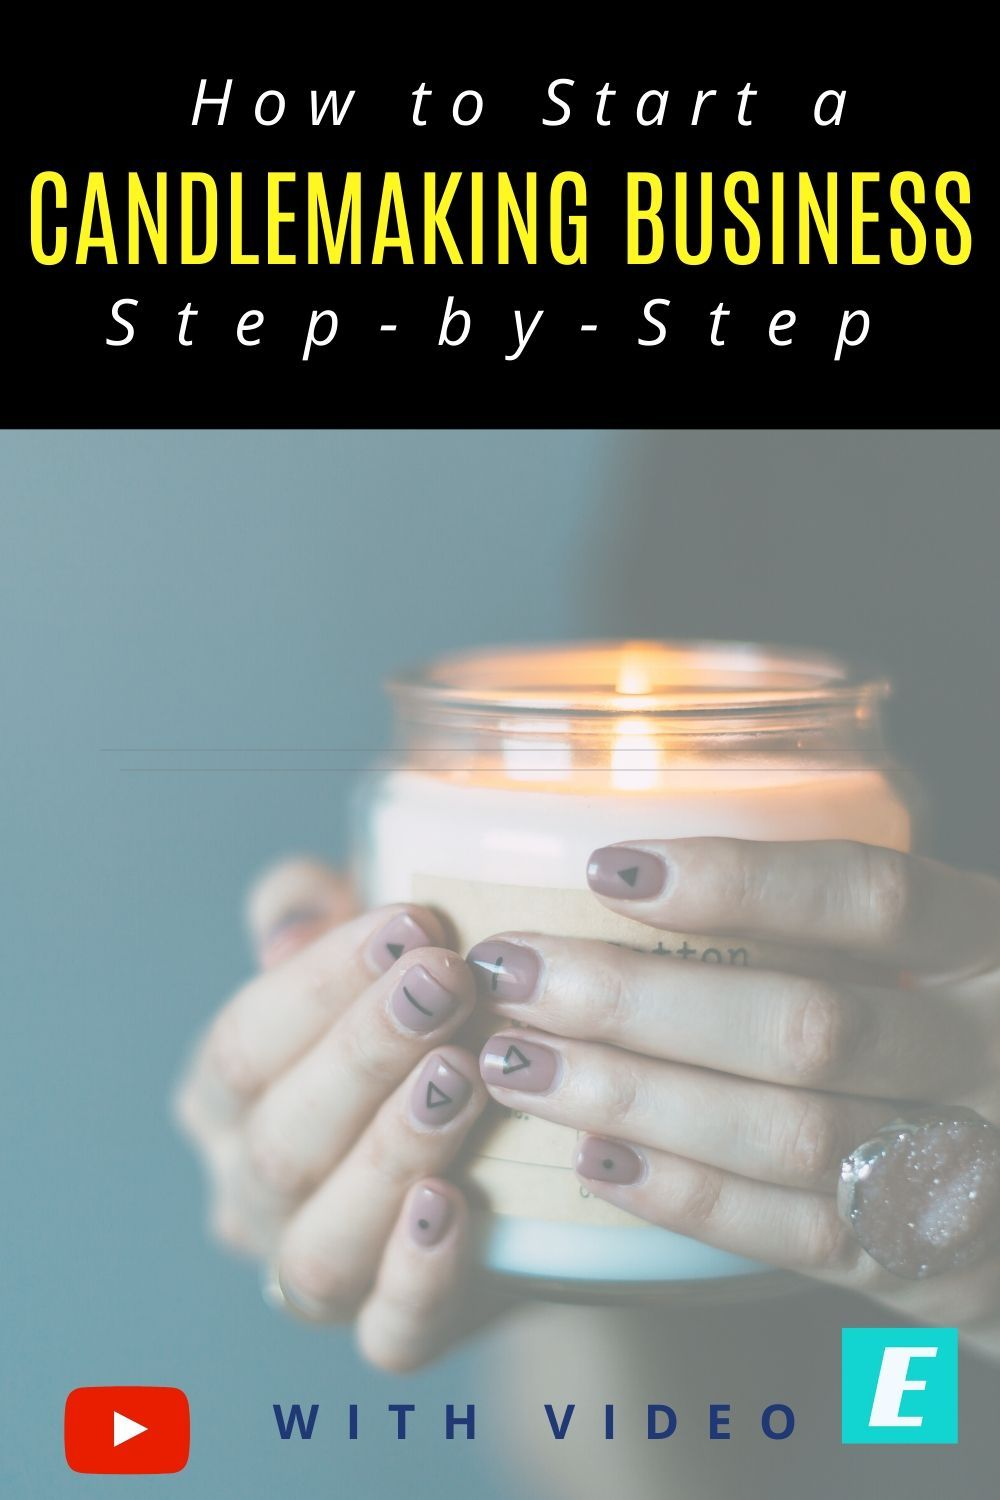 How To Start A Candle Making Business Step By Step In 2020 Candle Making Business Candle Business Candle Making For Beginners